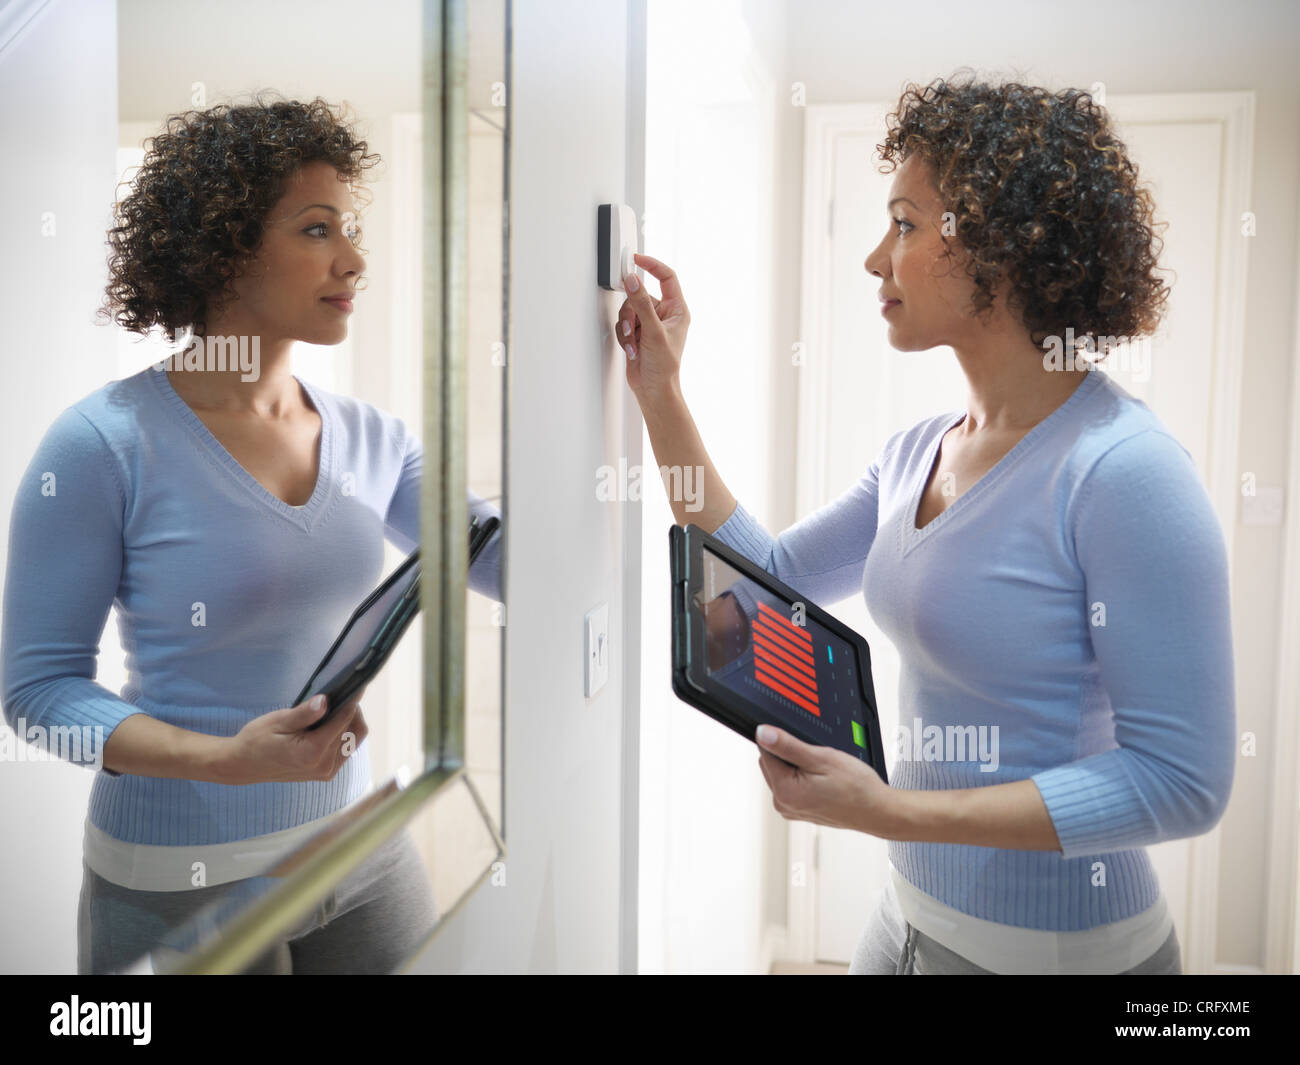 Woman adjusting thermostat in home - Stock Image